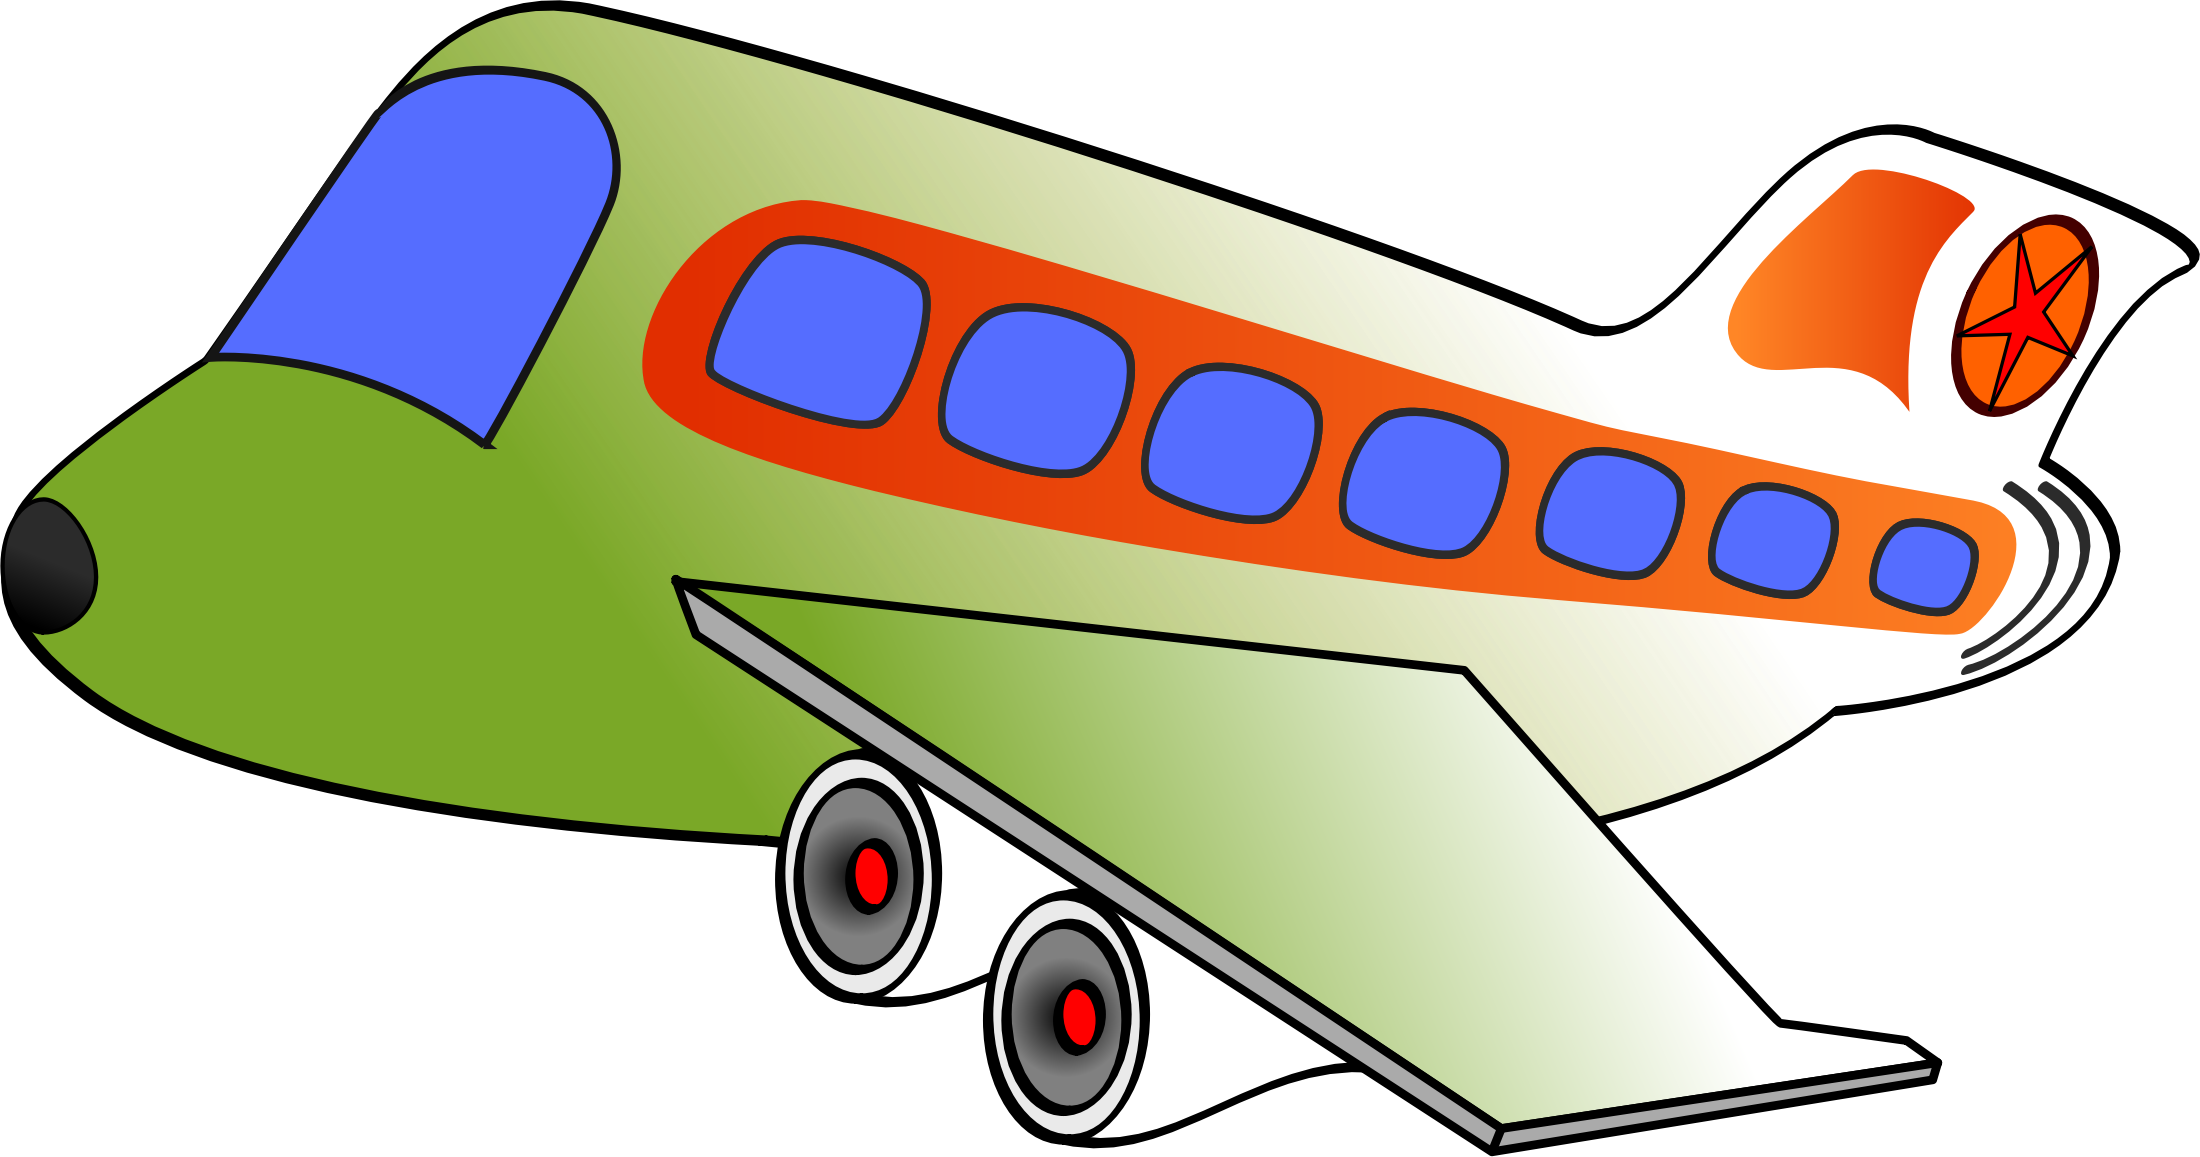 Airplane clipart funny Airplane Clipart two funny airplane